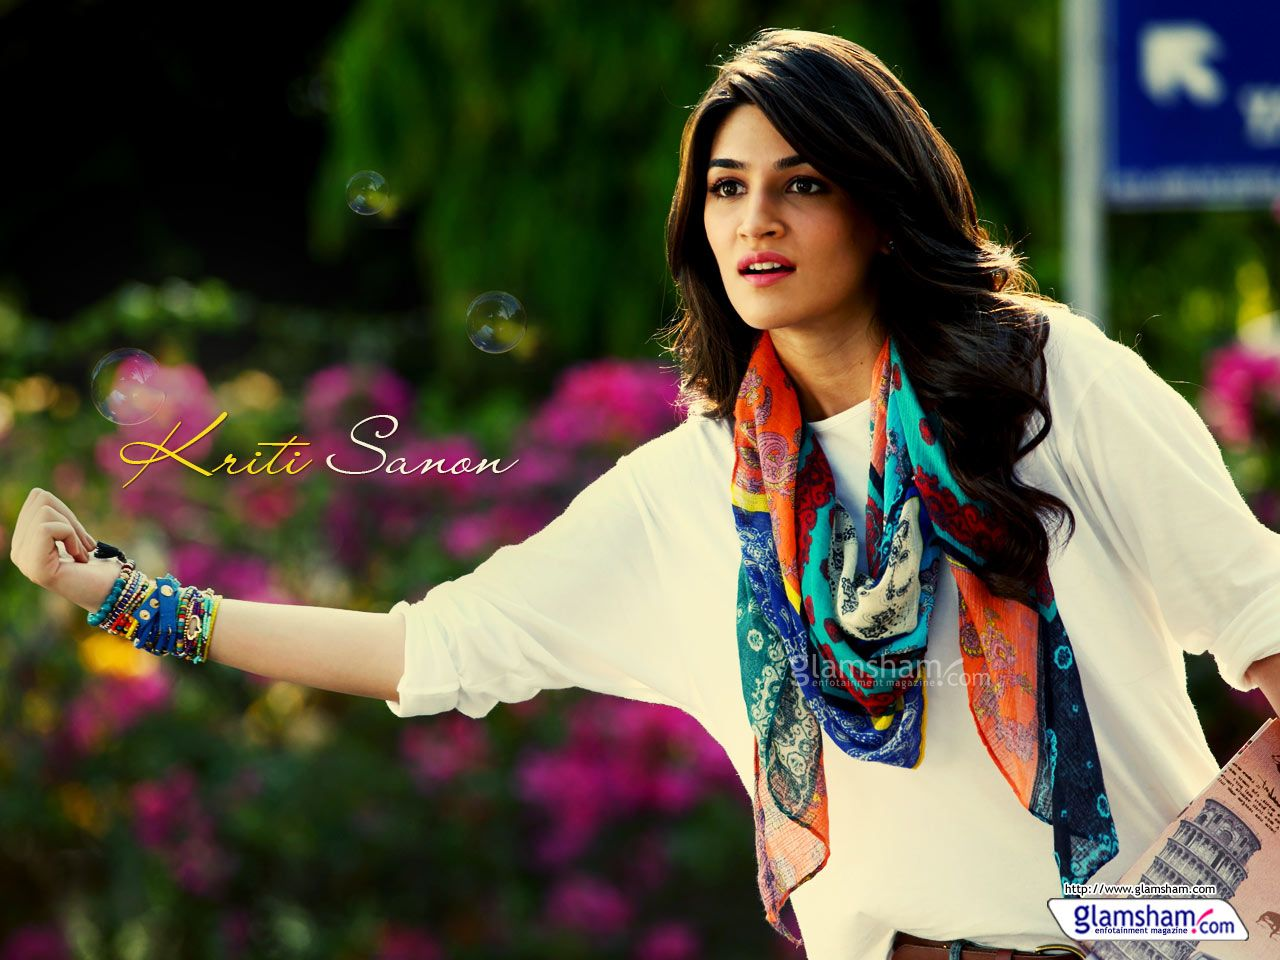 Kriti sanon images hd wallpaper all 4u wallpaper - Search Results For Kriti Sanon Dilwale Hd Wallpapers Adorable Wallpapers